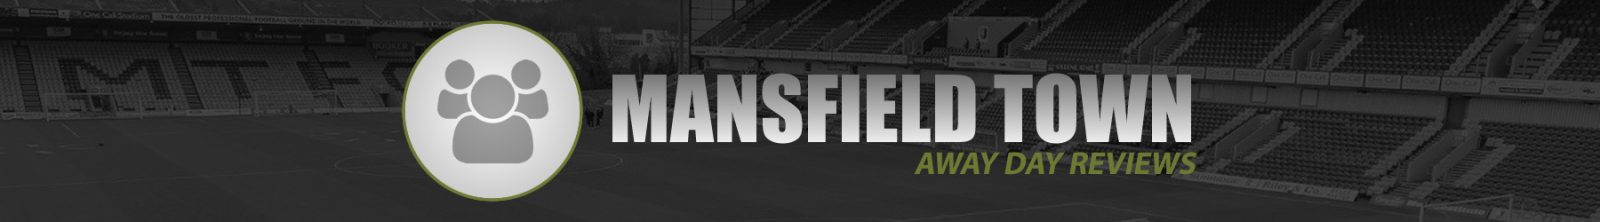 Review Mansfield Town